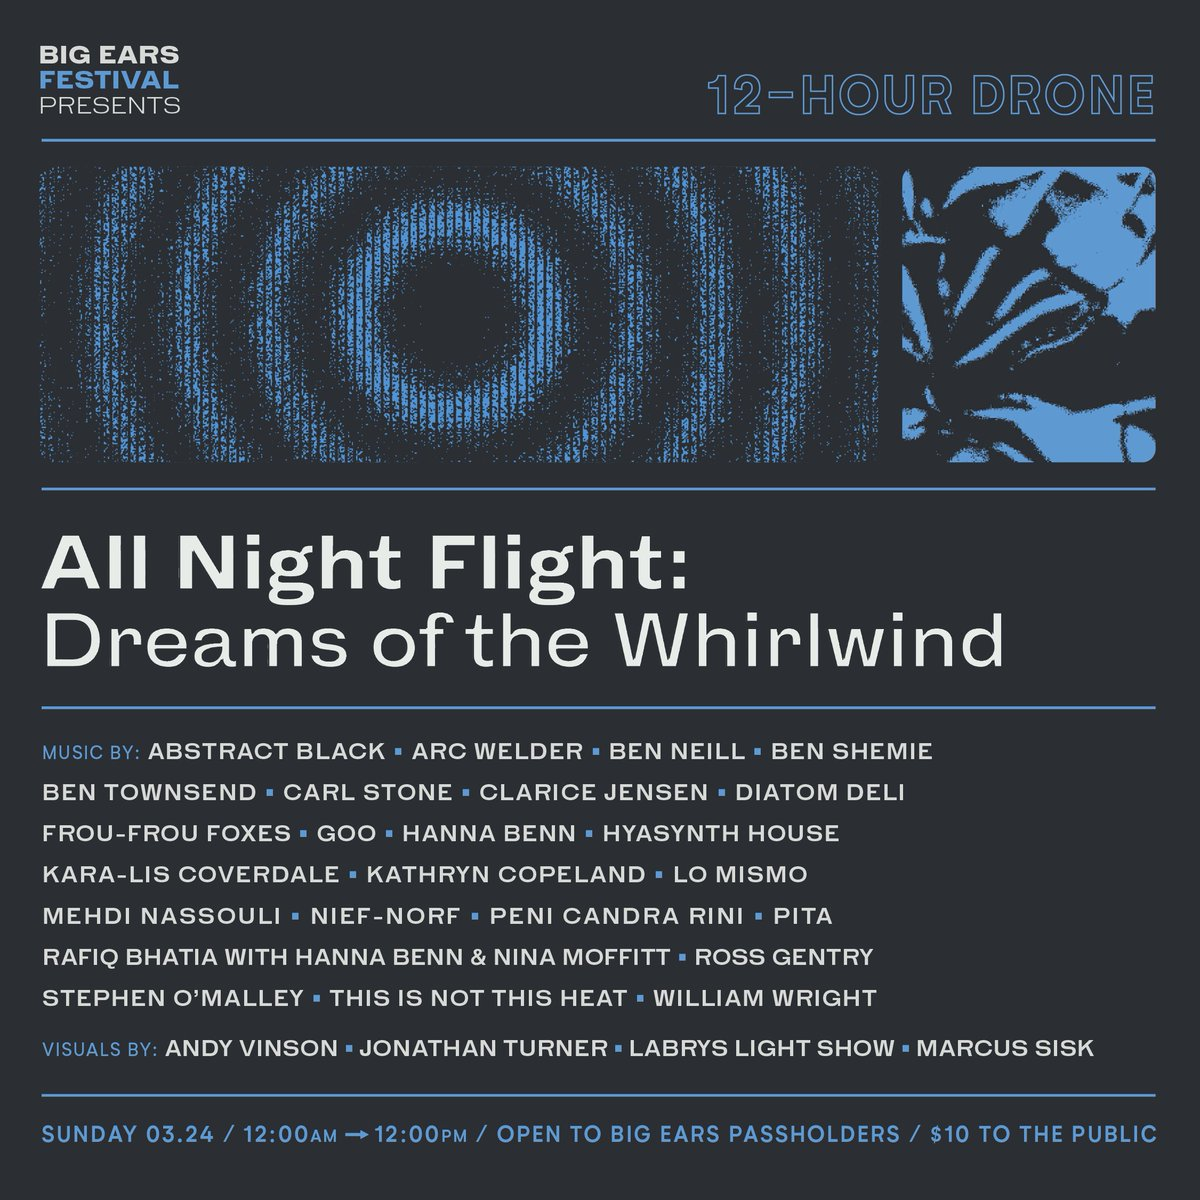 We're thrilled to announce the second edition of All Night Flight, our 12-hour drone concert, at Big Ears 2019. Join @IdeologicOrgan, @kliscoverdale, @rafiqbhatia, and 20 others for an overnight journey of seamless sound. Read about it: http://fal.cn/rGtM